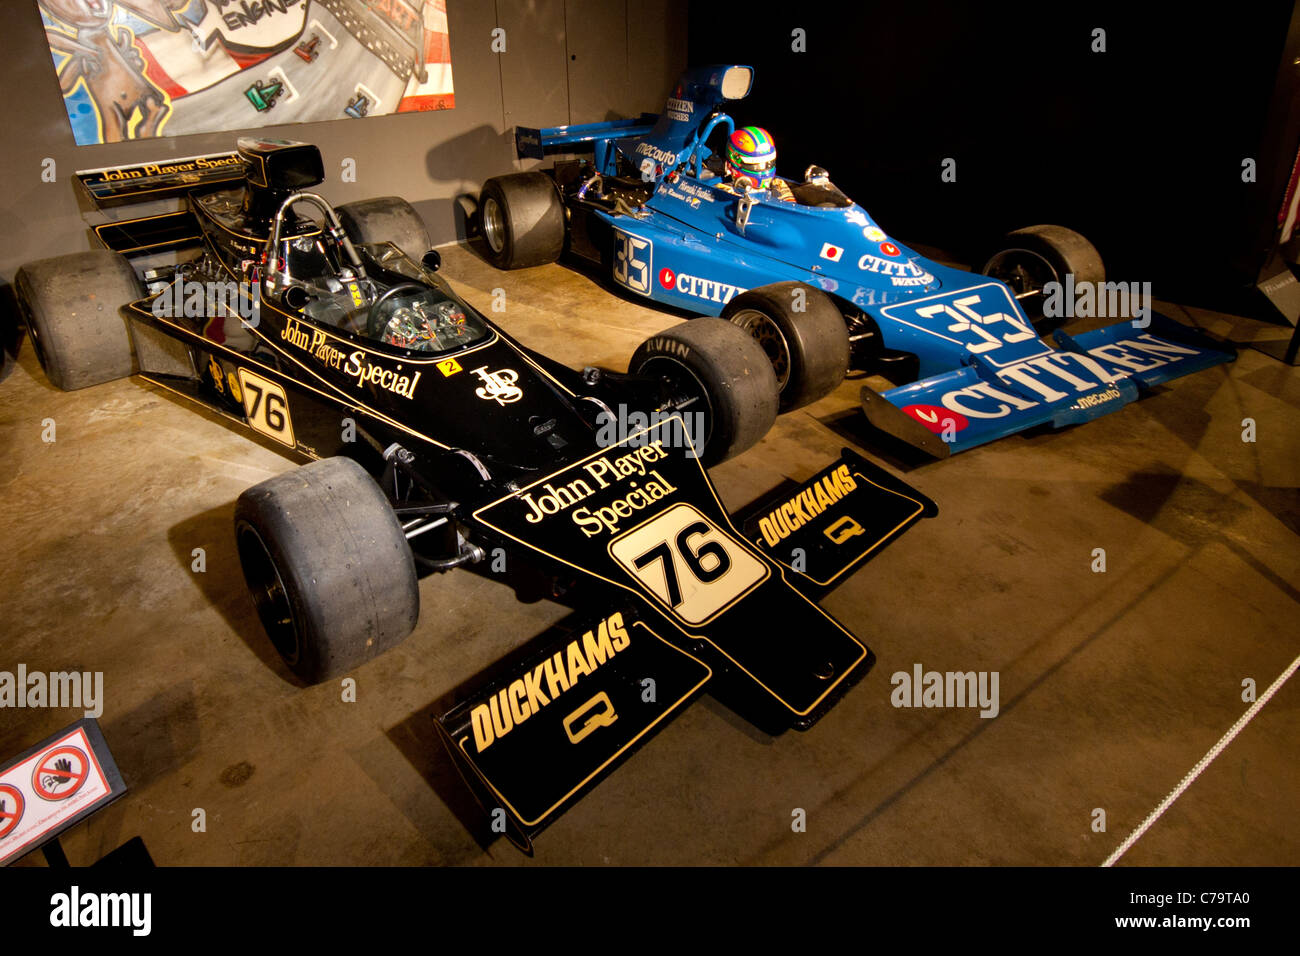 lotus 76 formula 1 car of jacky ickx and ronnie peterson in the spa stock photo 38939992 alamy. Black Bedroom Furniture Sets. Home Design Ideas